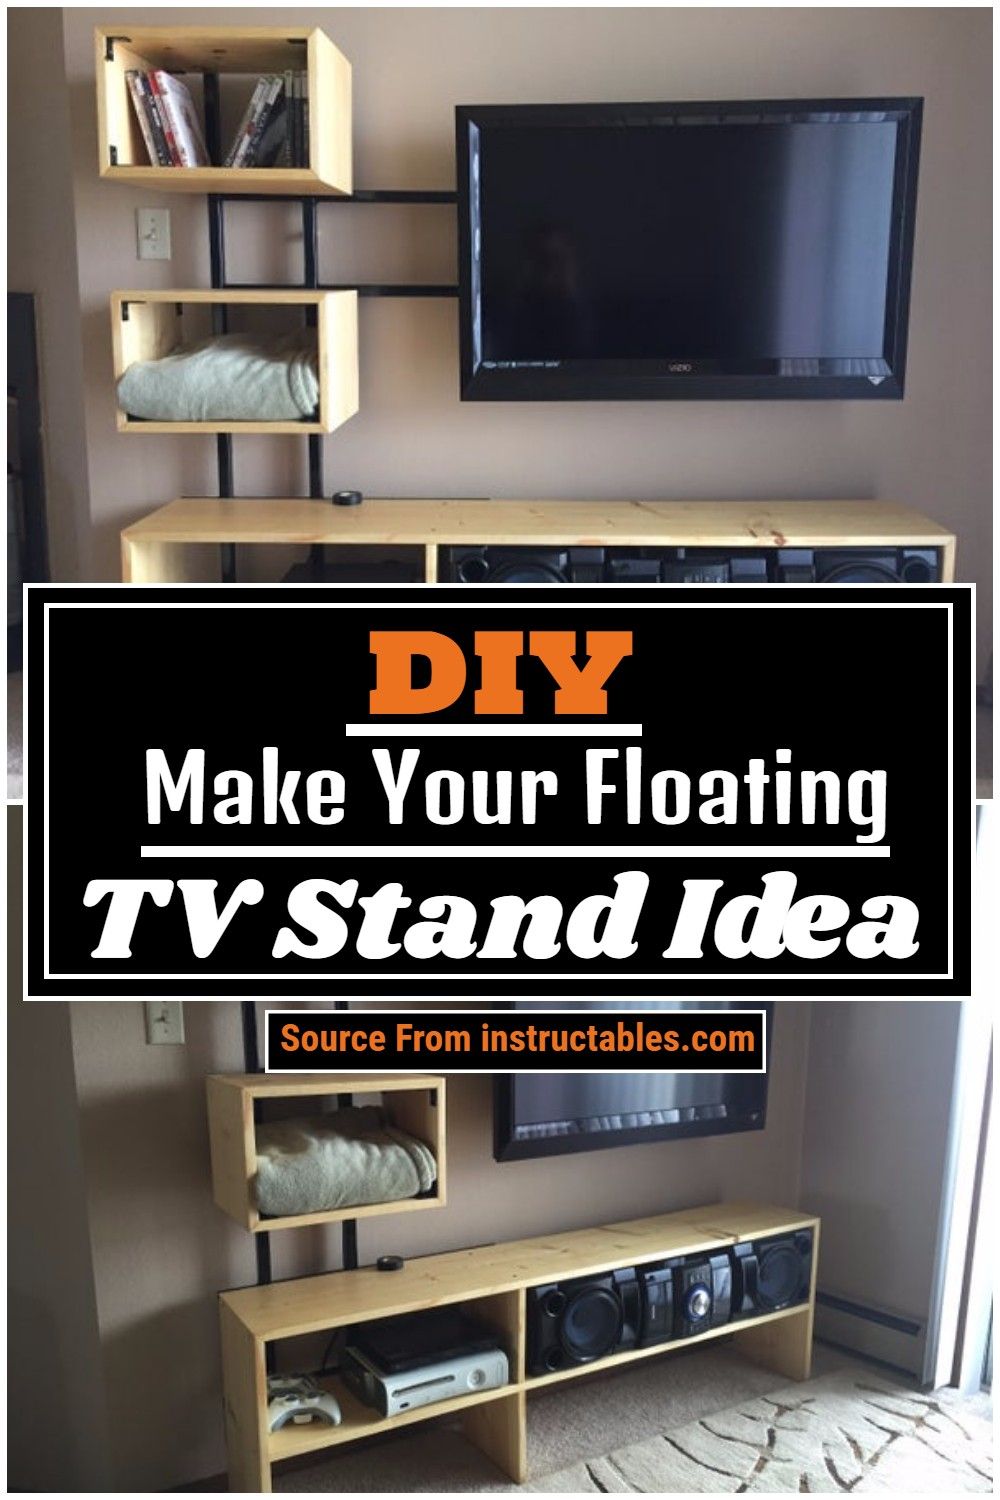 Make Your DIY Floating TV Stand Idea